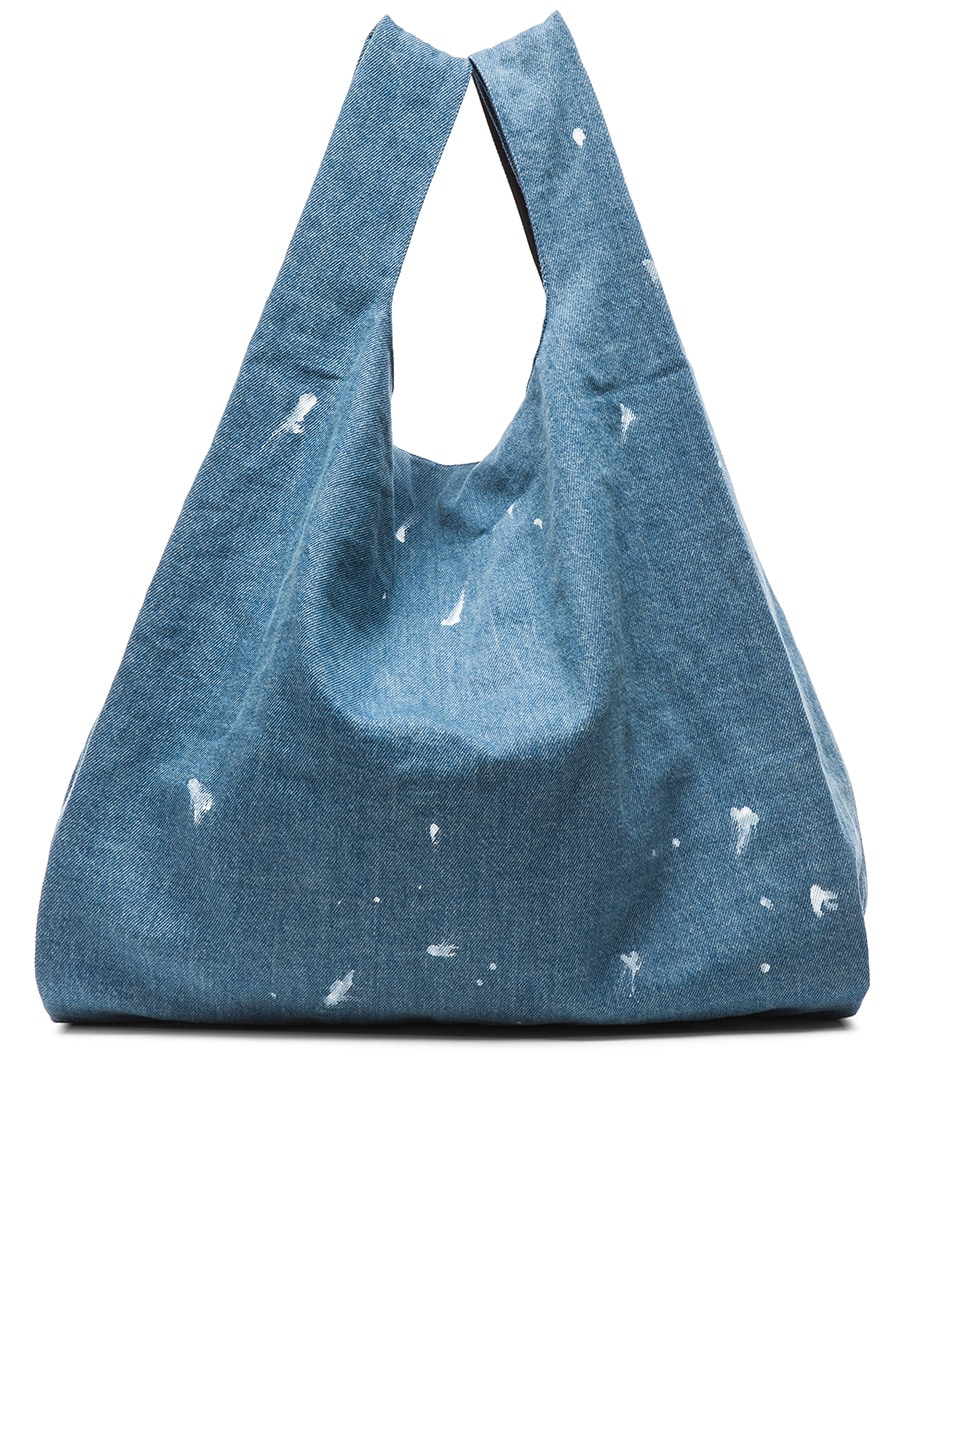 Image 1 of MM6 Maison Margiela Denim Tote in Indigo